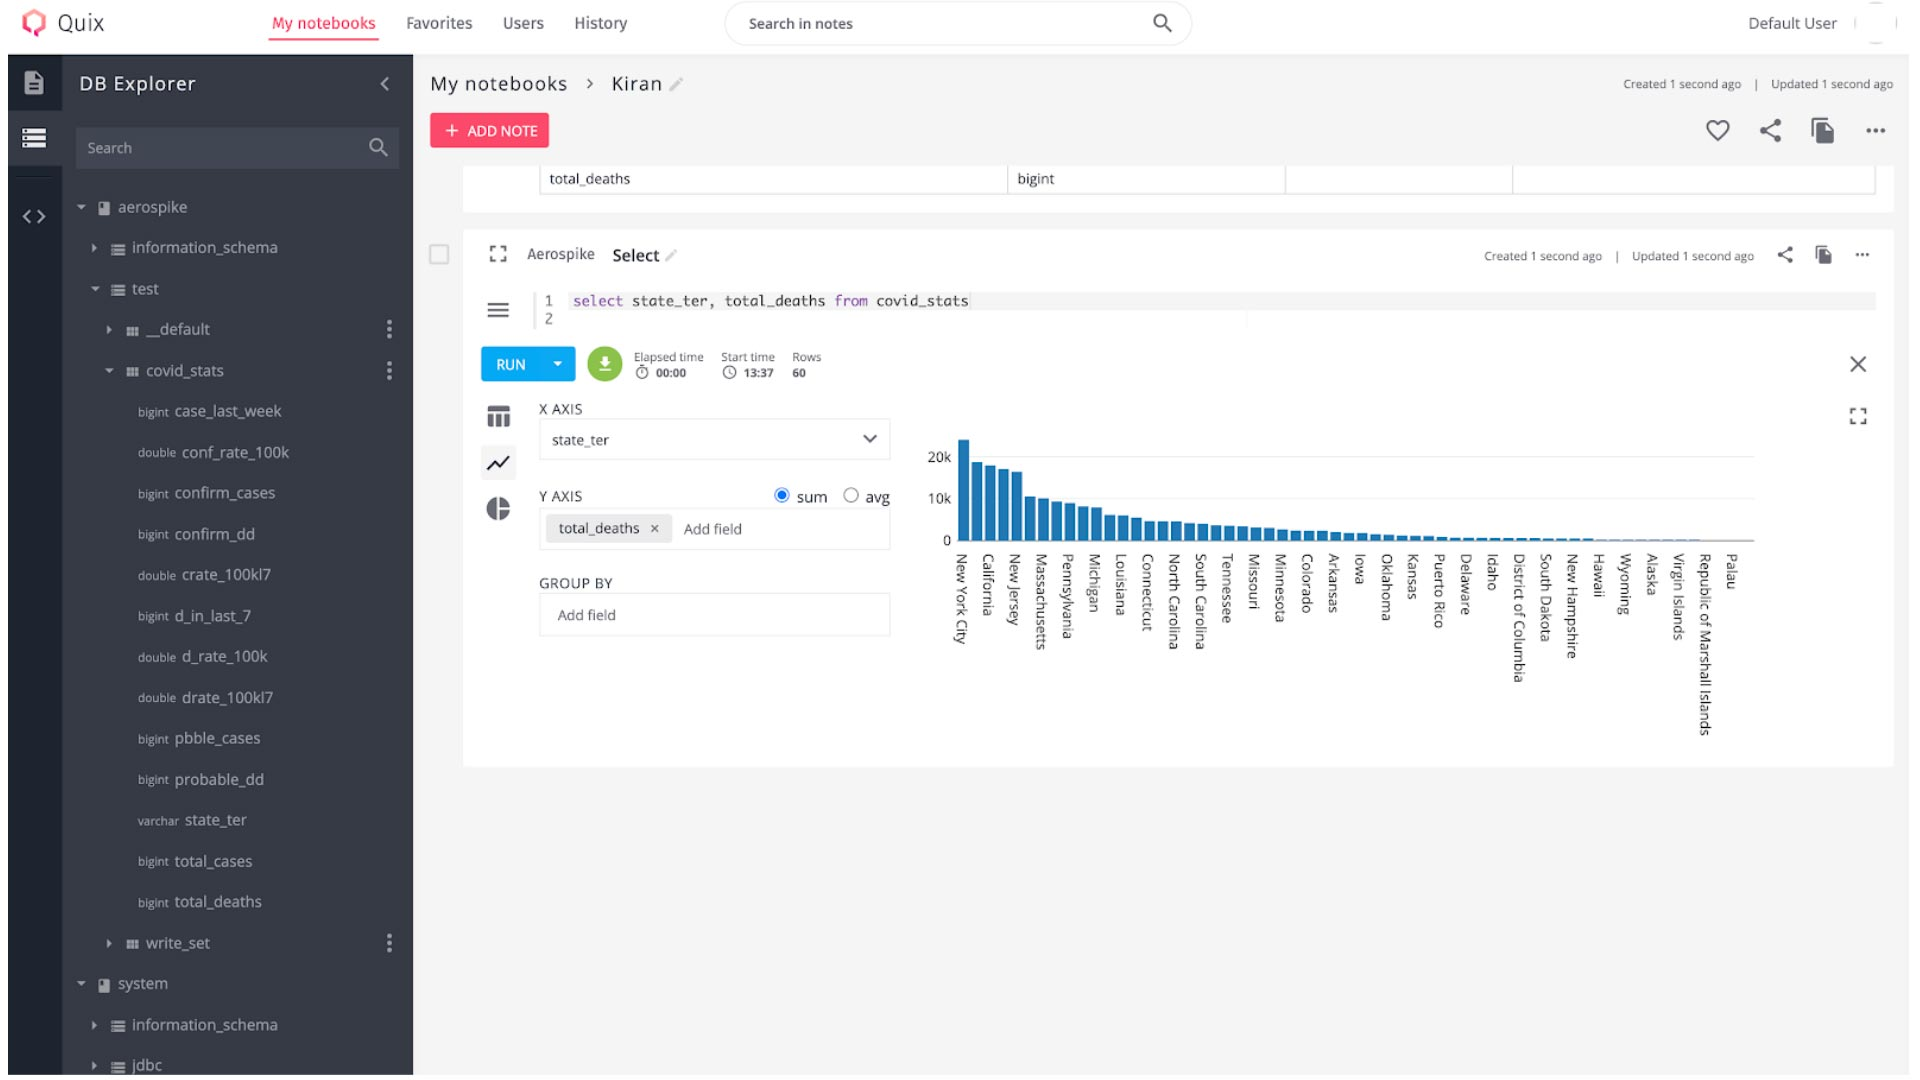 Interactive query against Aerospike data using the Quix SQL editor